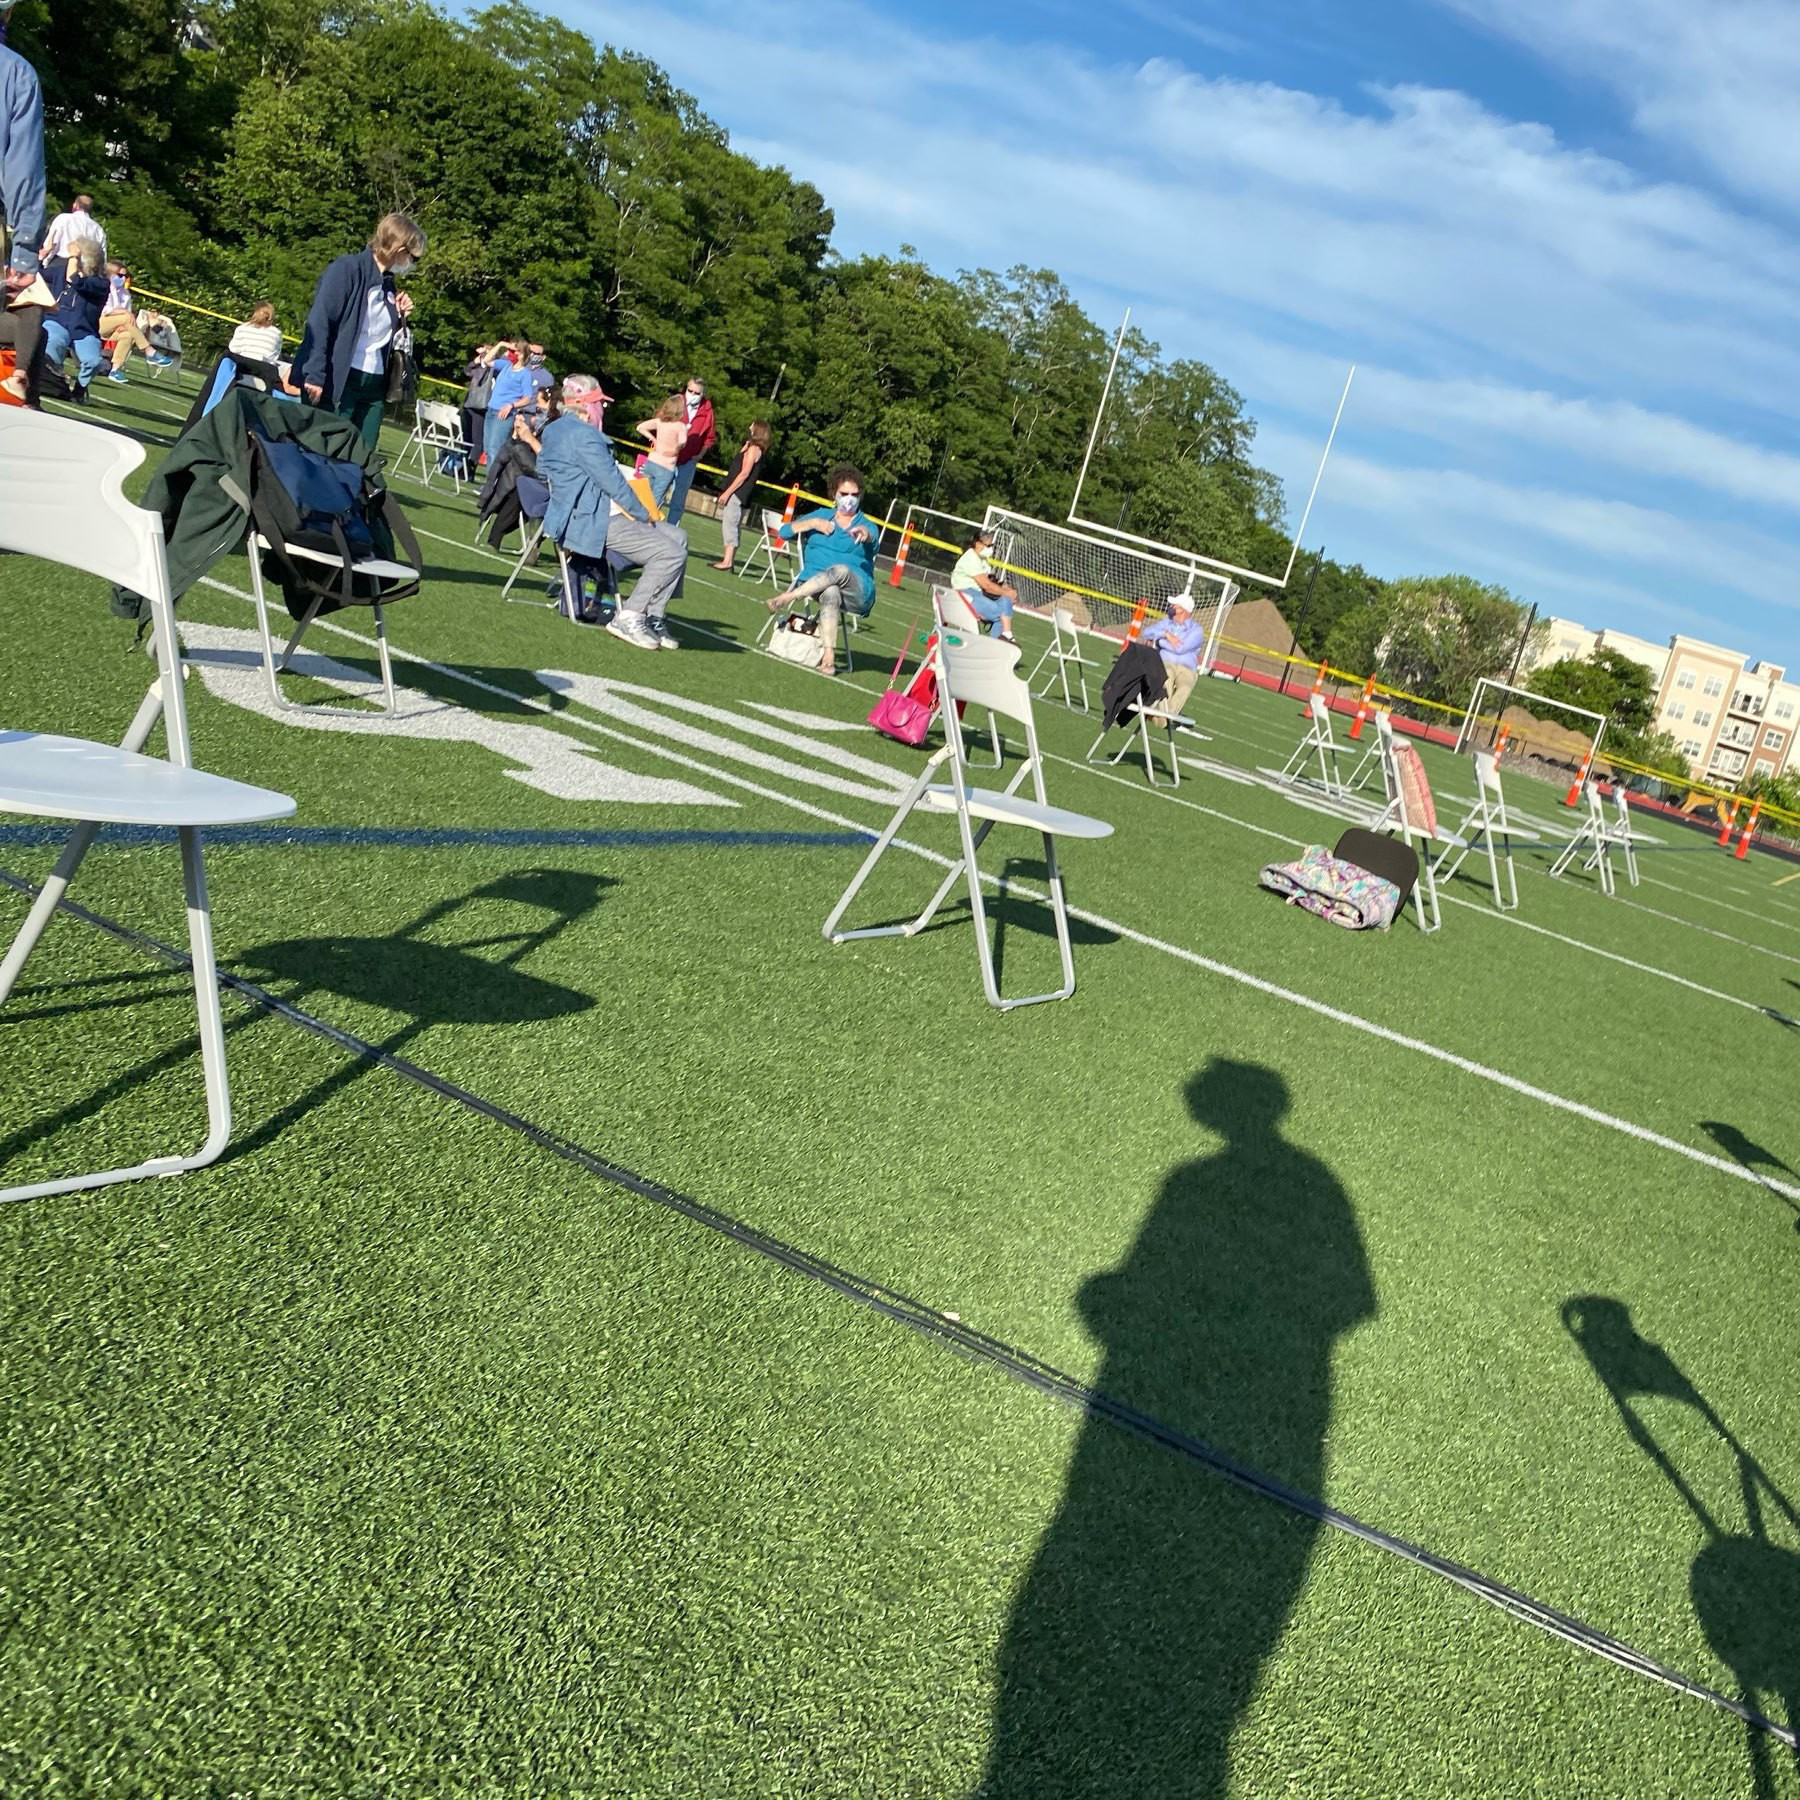 Shot of chairs spaced widely on a football field